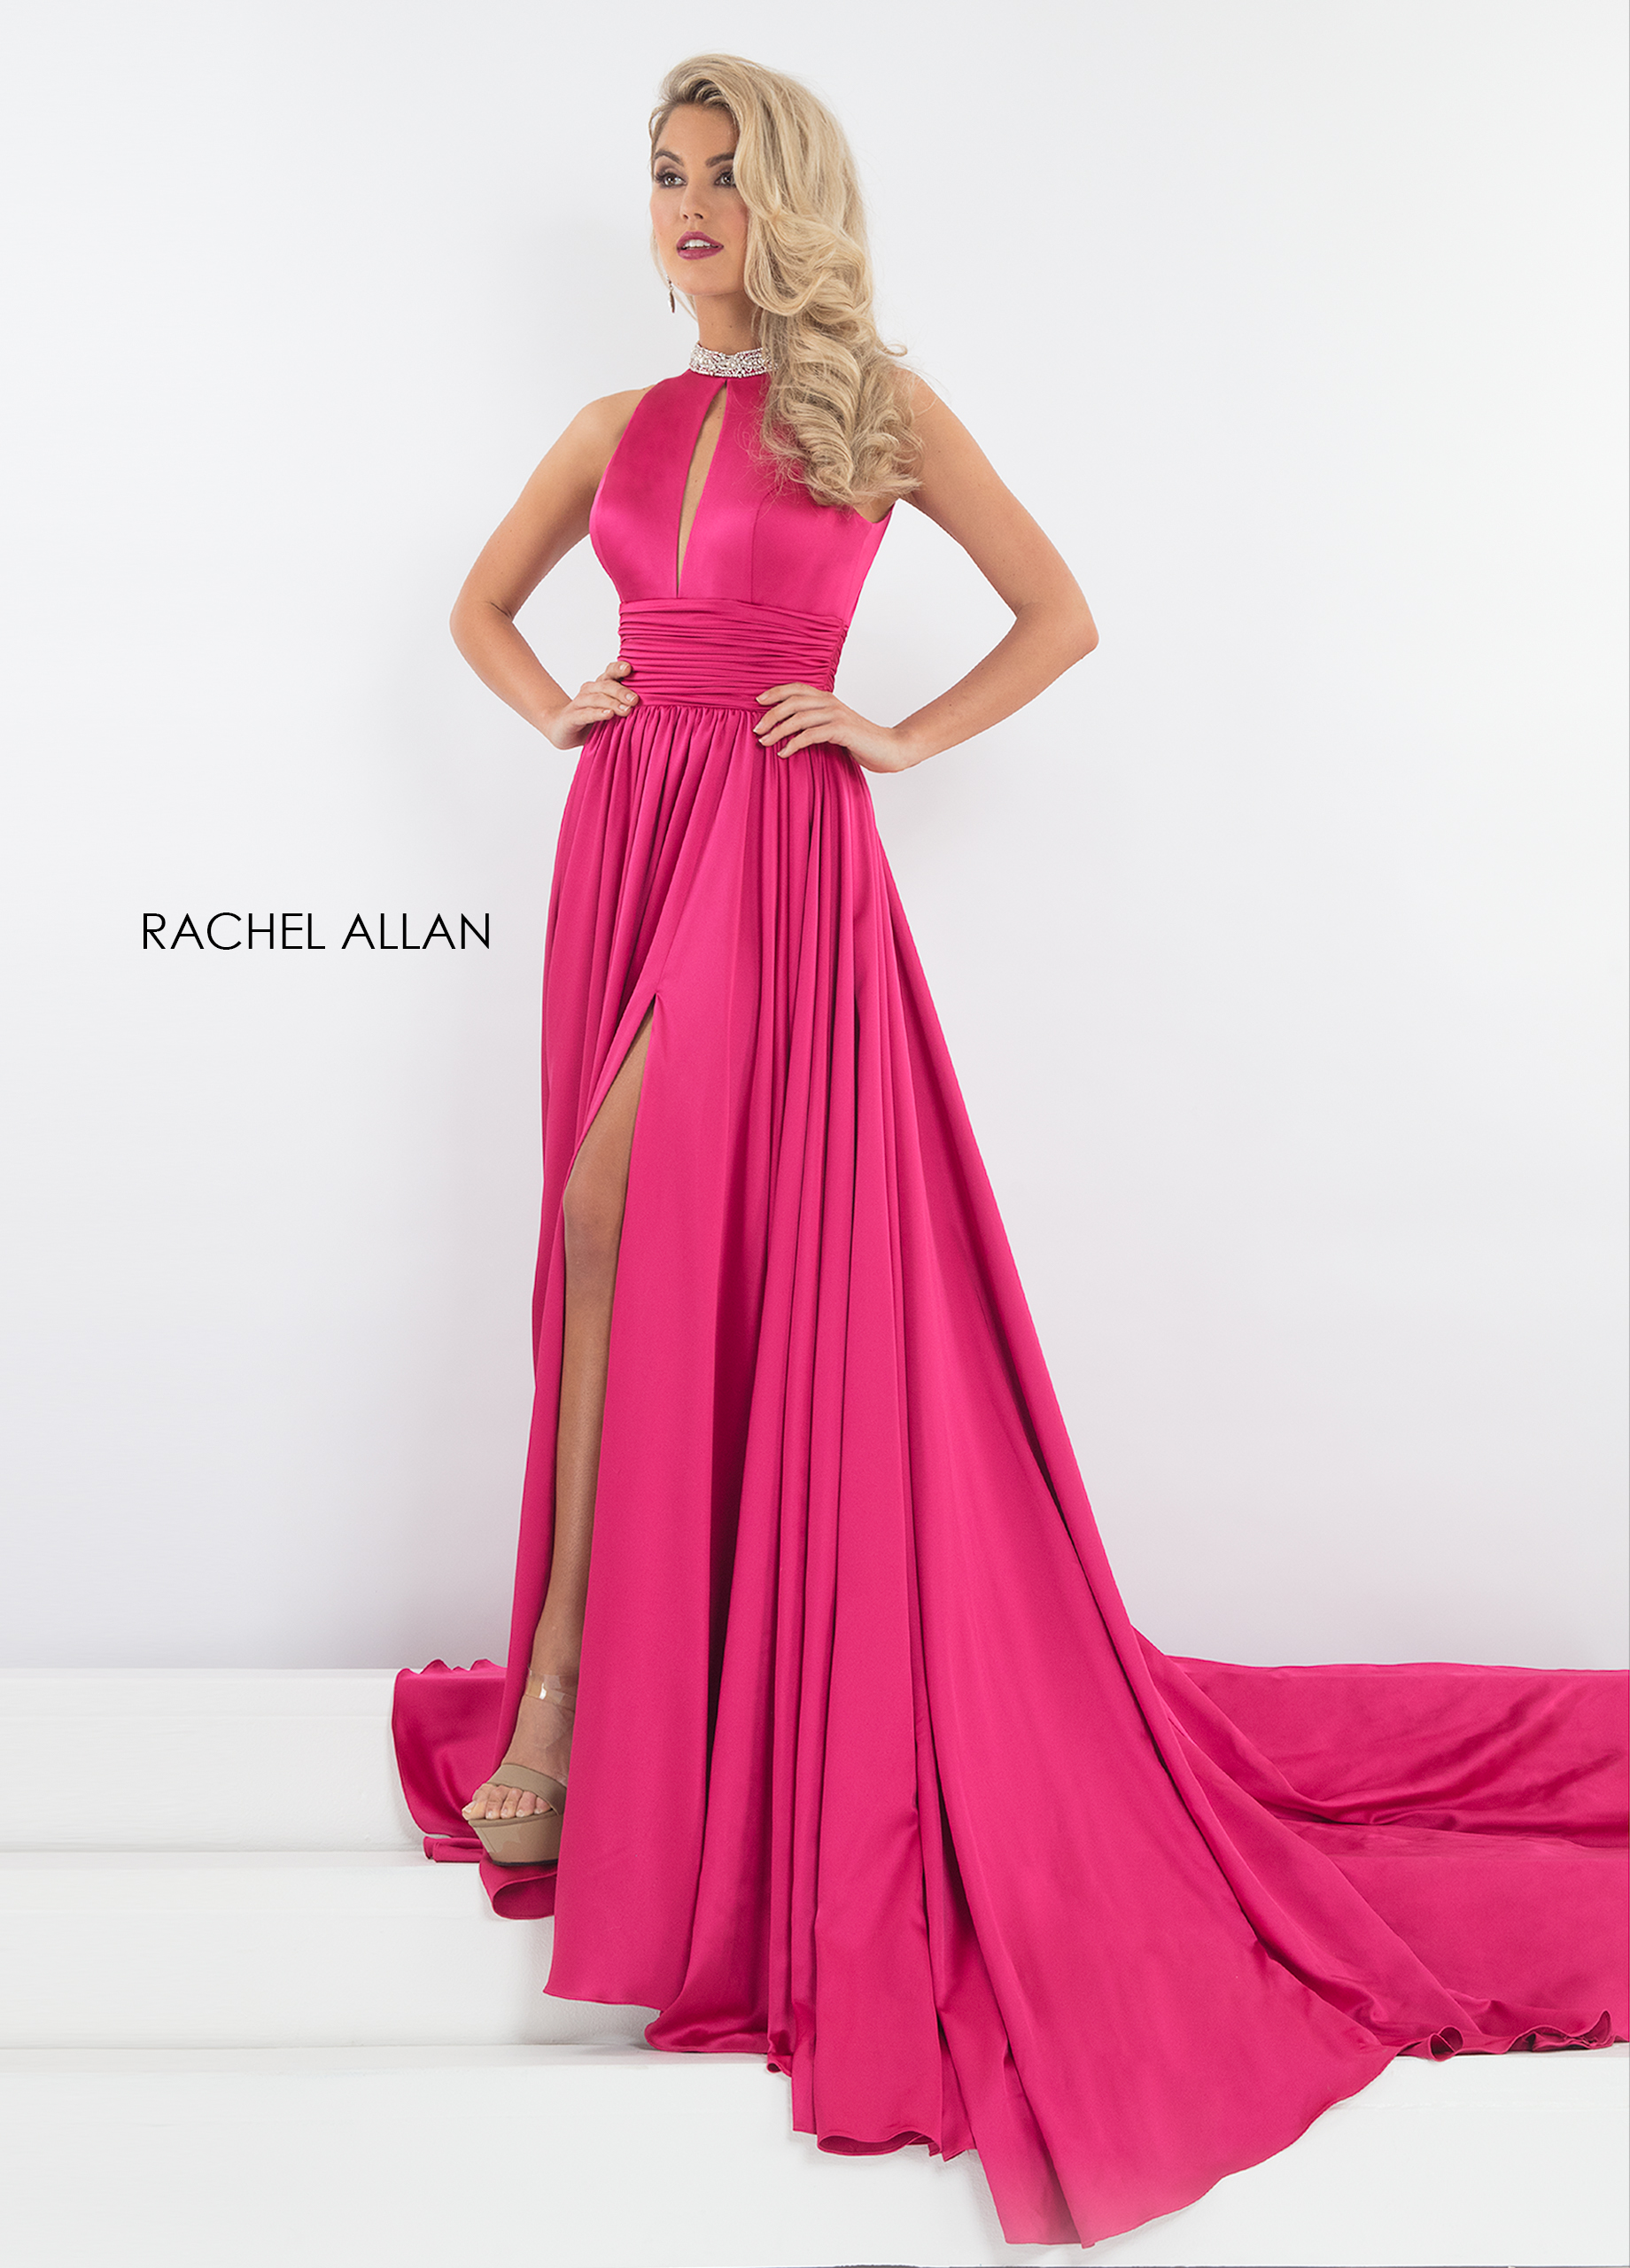 High Neckline Fit & Flare Pageant Dresses in Fuchsia Color